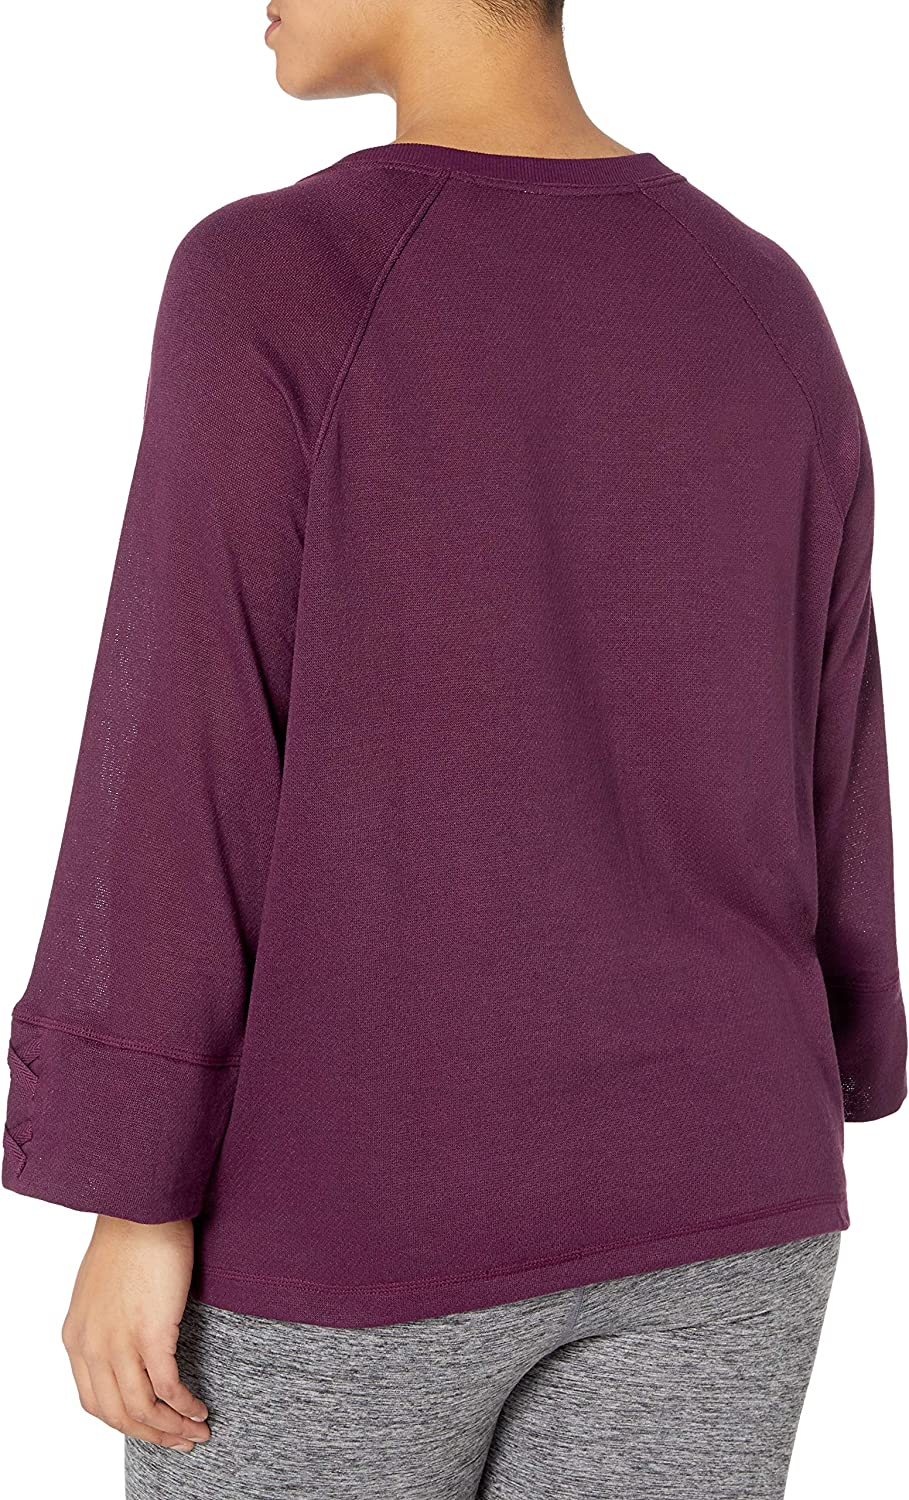 Just My Size Womens Sweatshirt with Lace-up Sleeves Shirt